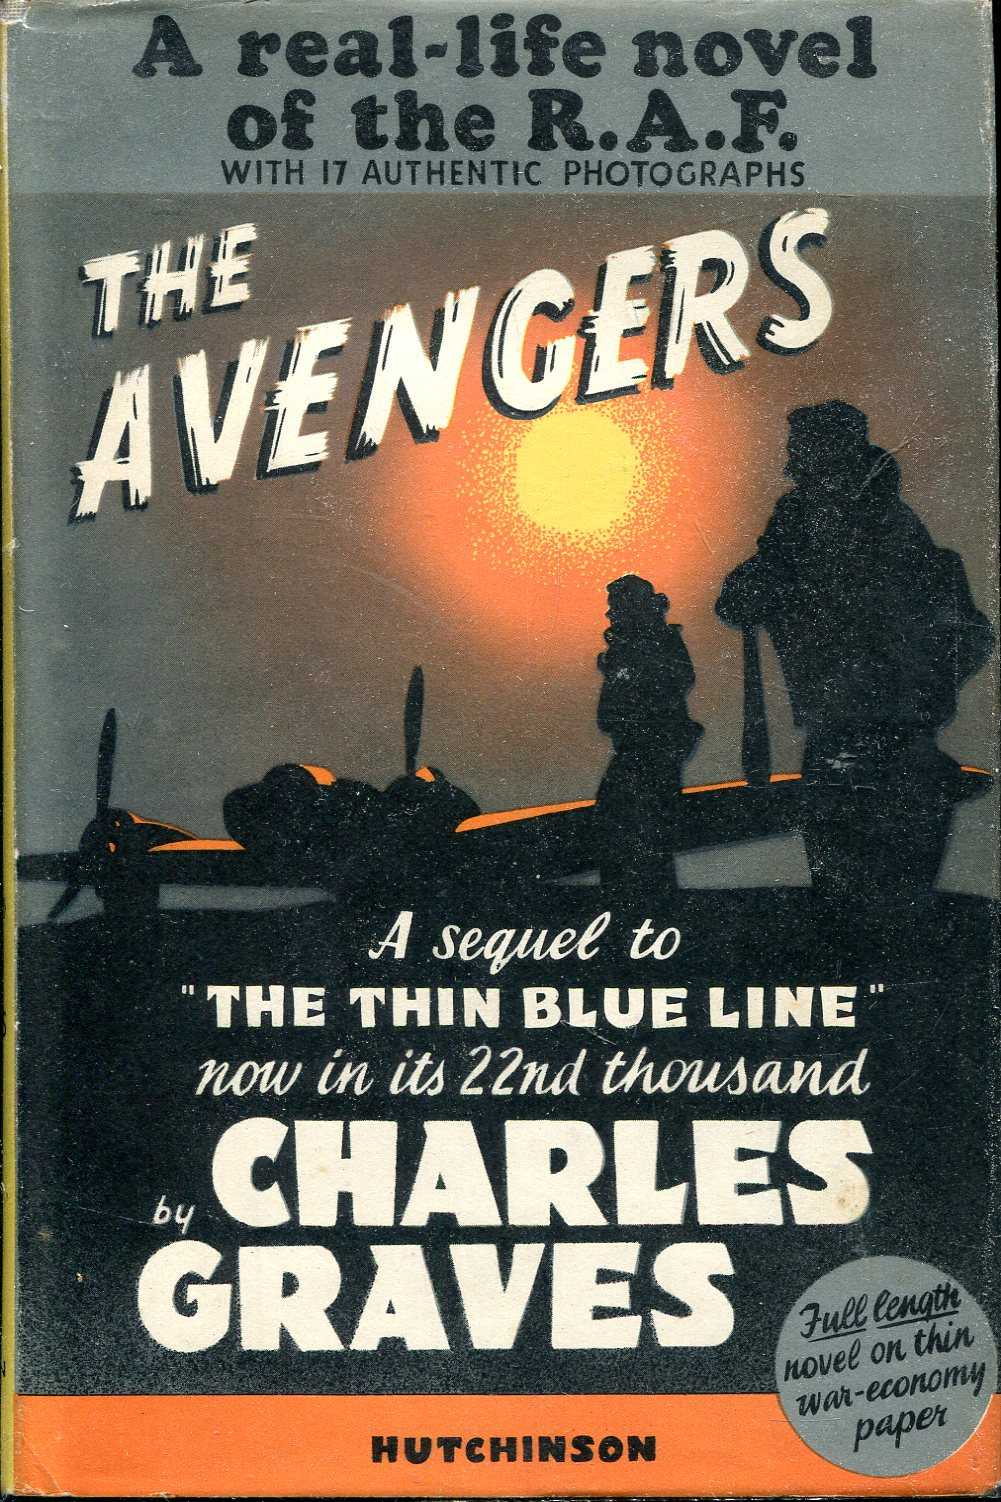 Image for The Avengers : a real-life novel of the R.A.F.